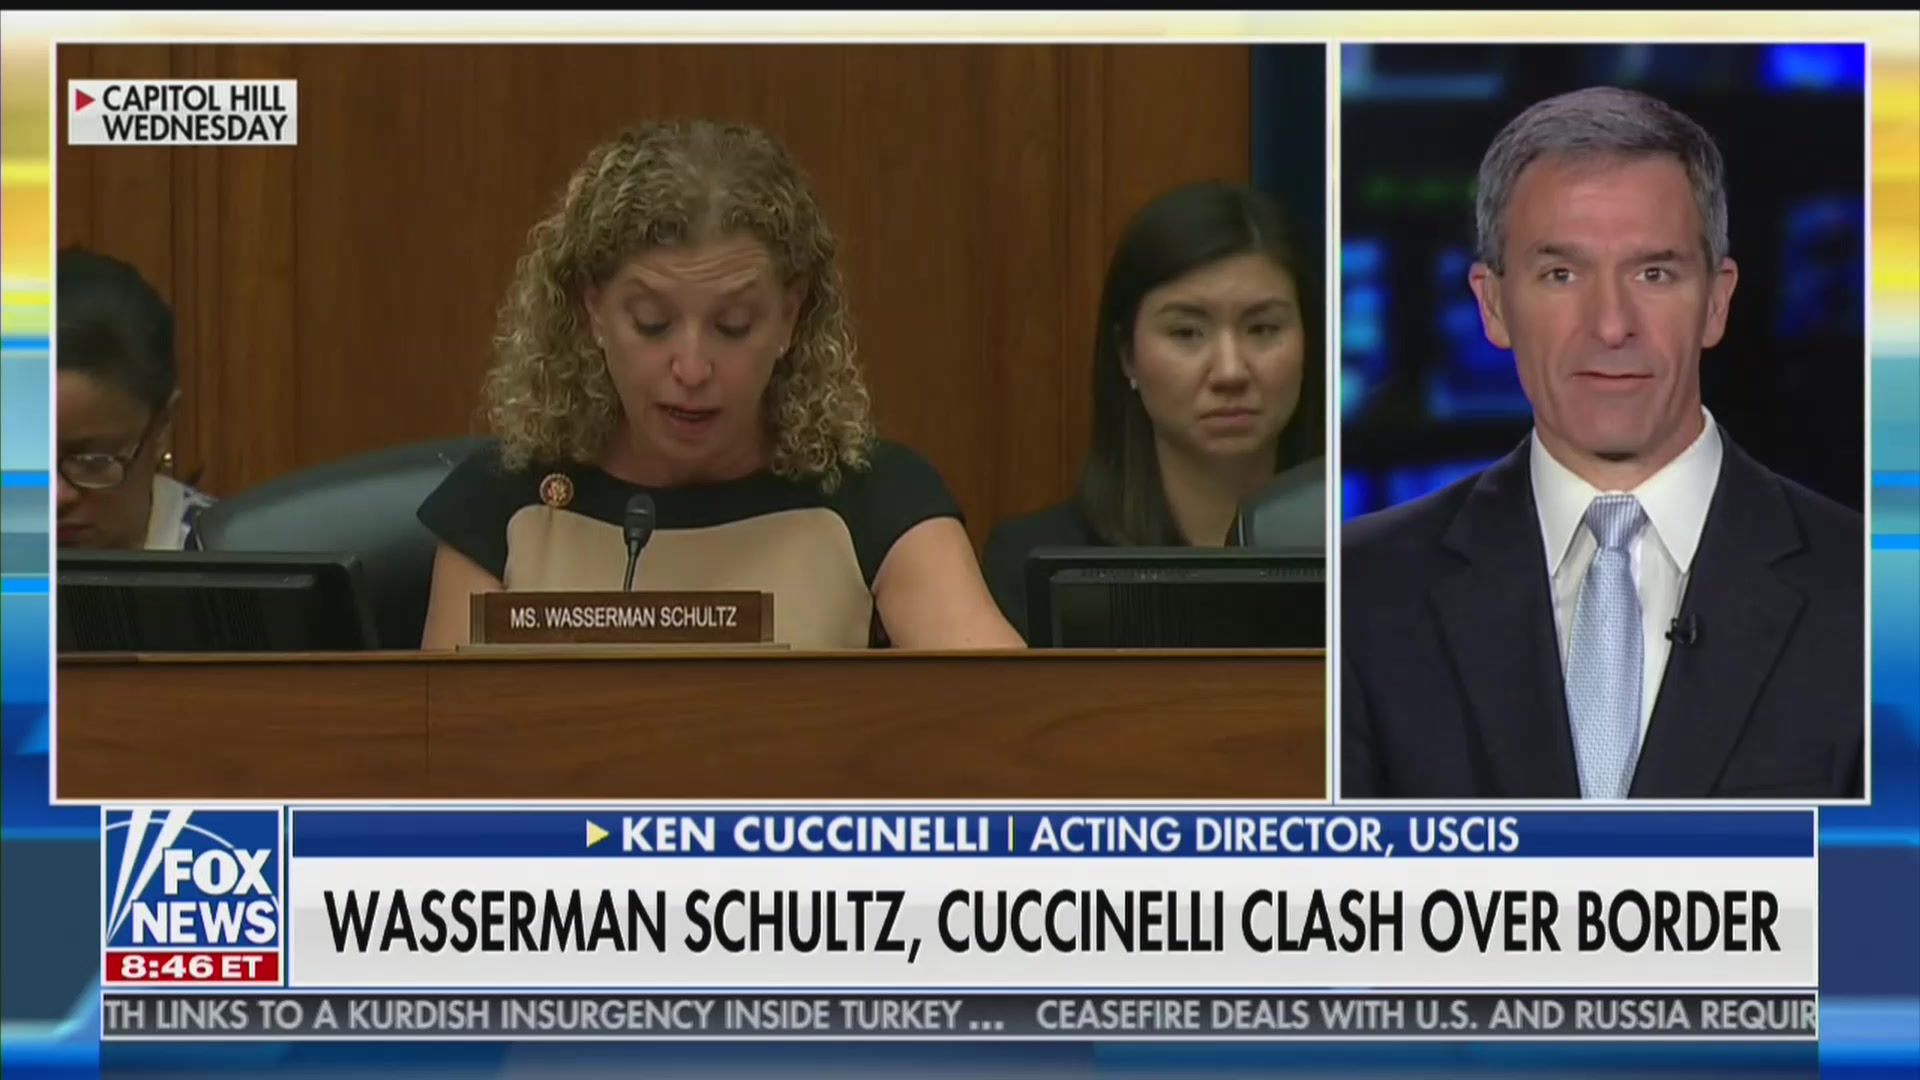 Ken Cuccinelli on Debbie Wasserman Schultz: She 'Got on Her Broom and Left'